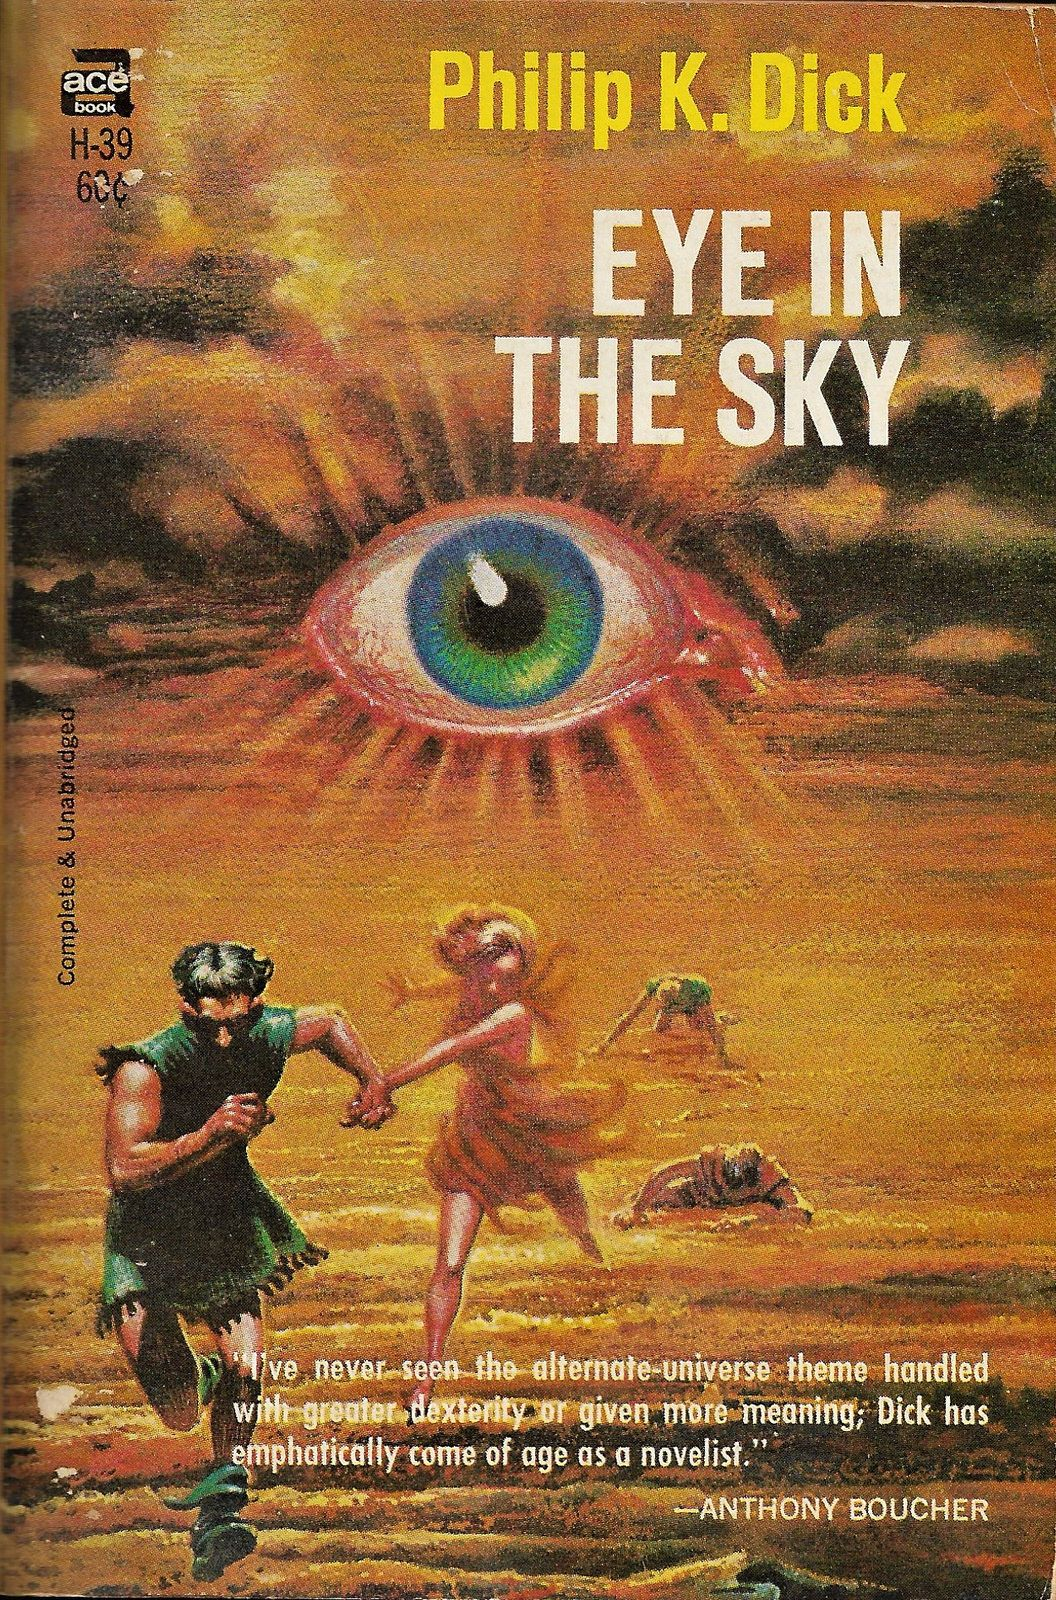 Pin by Mark Krempl on sf covers & art | Classic sci fi